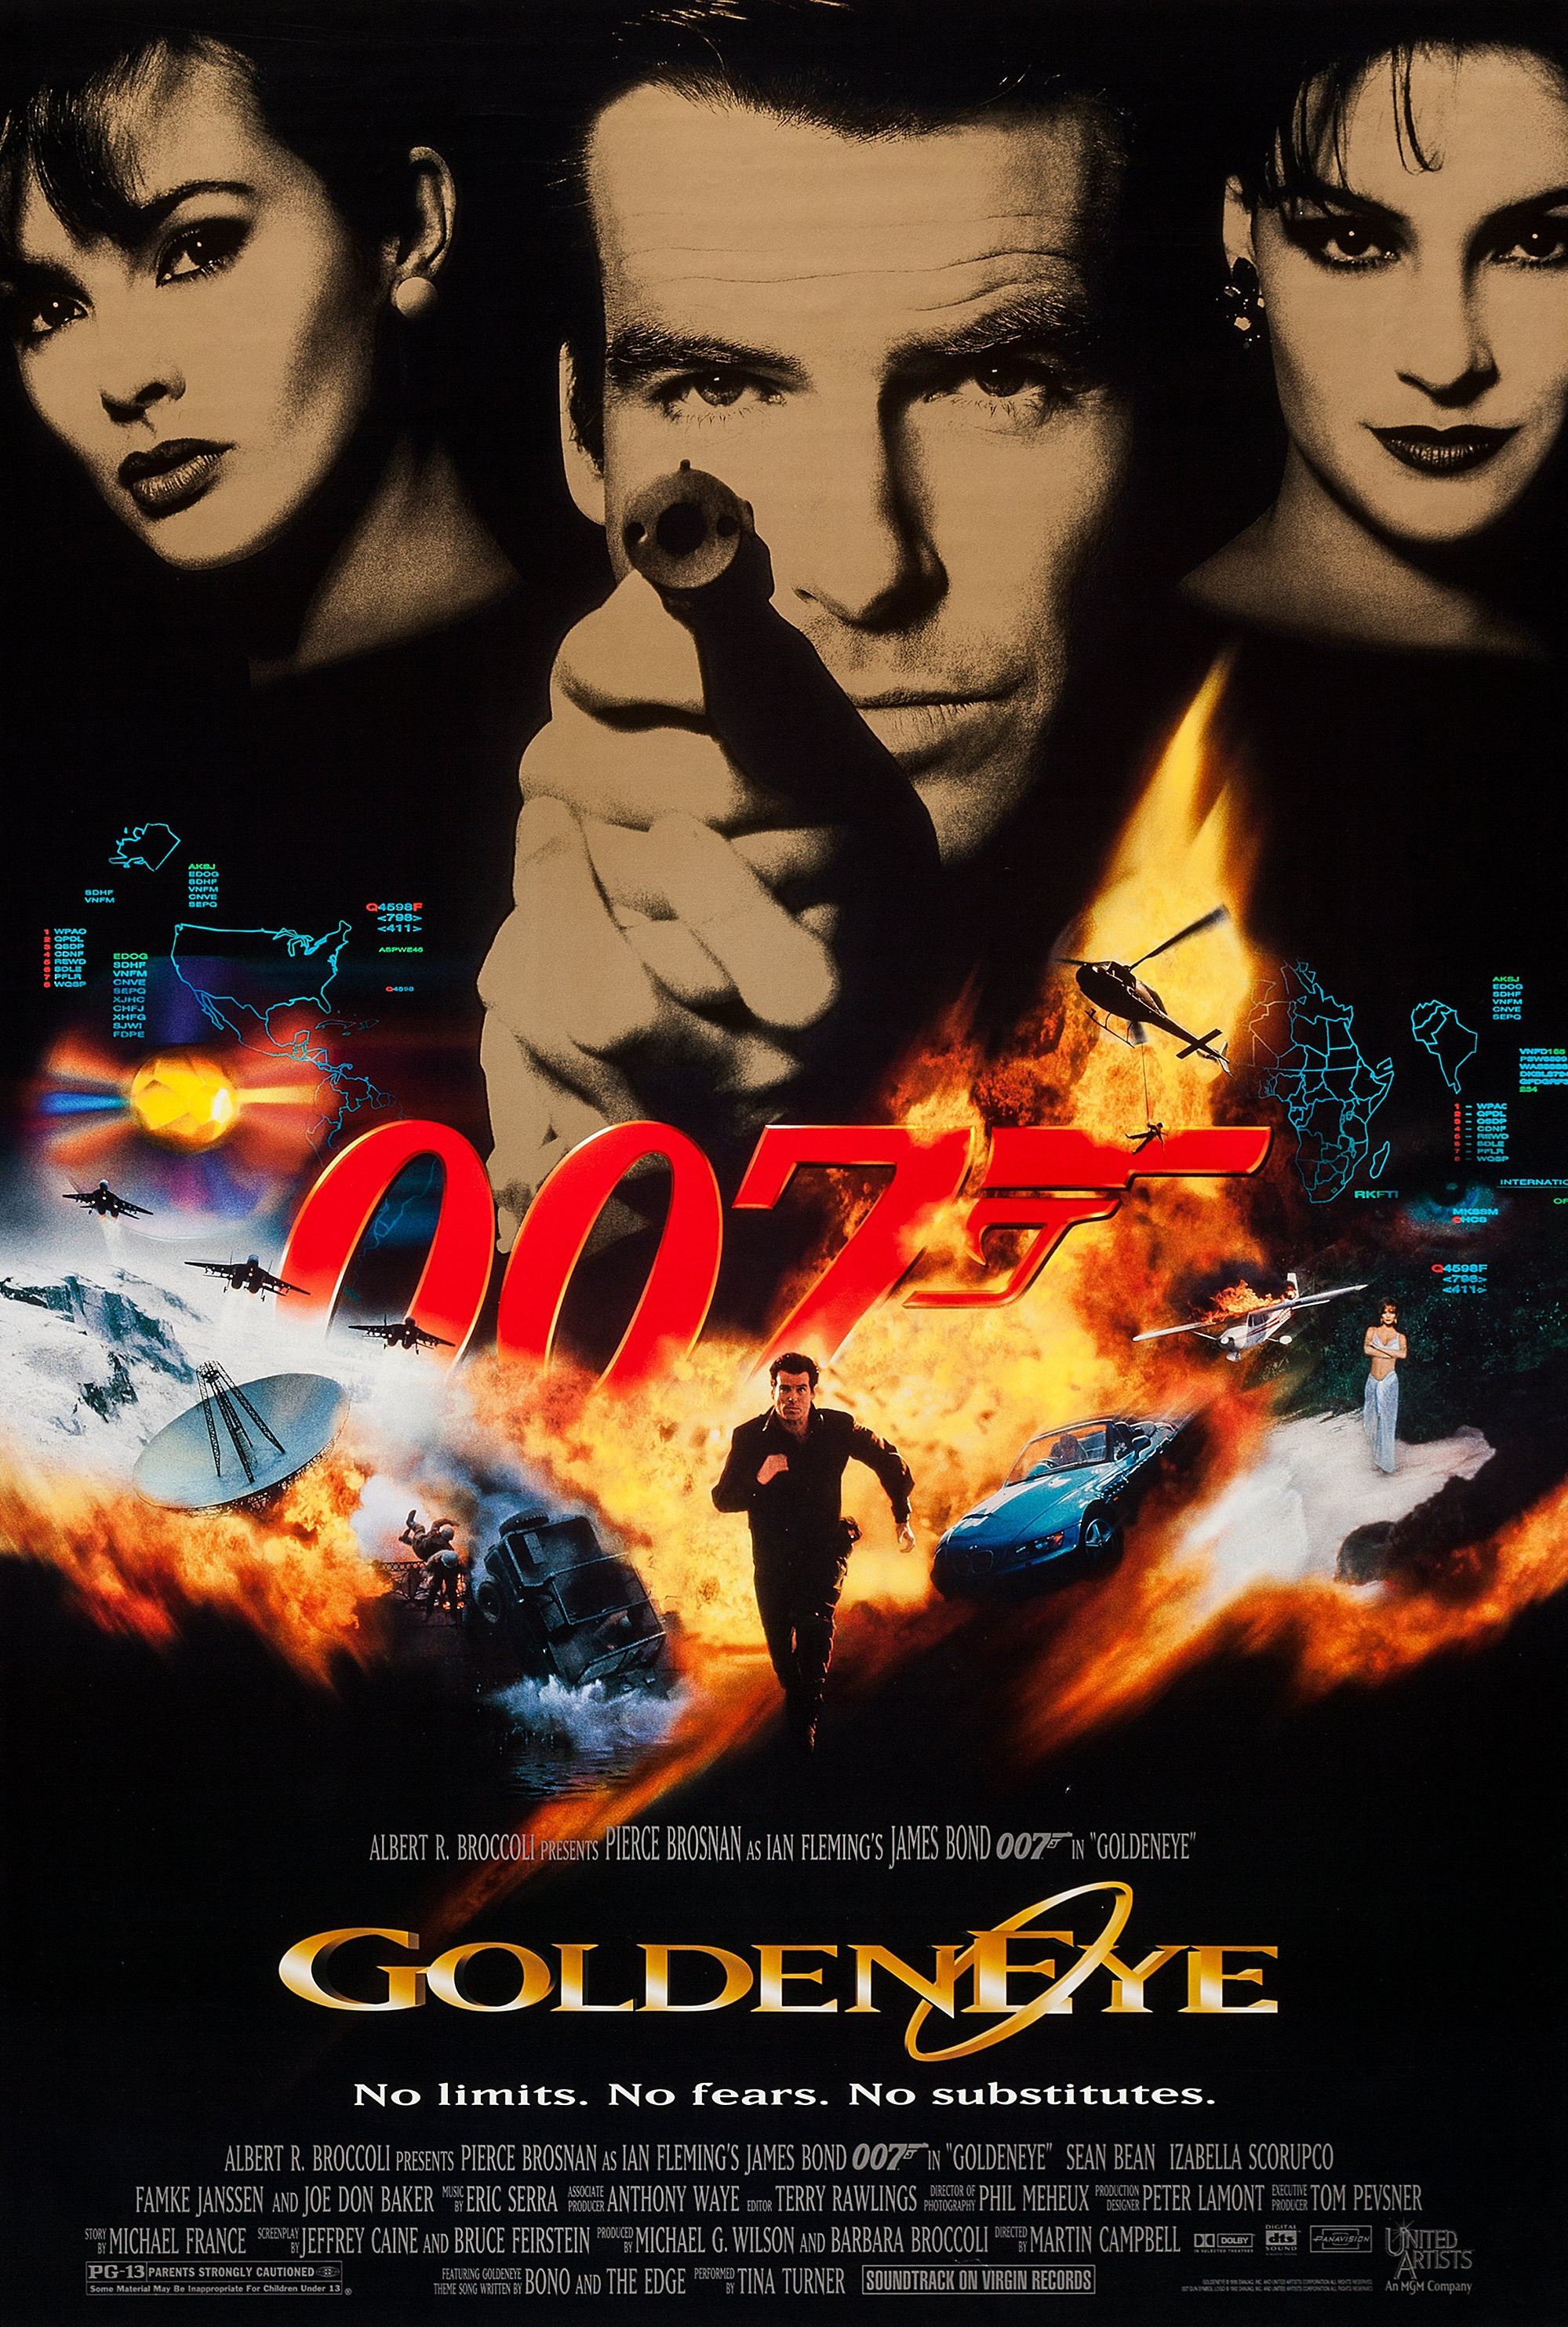 ファイル:Goldeneye movie poster.jpg